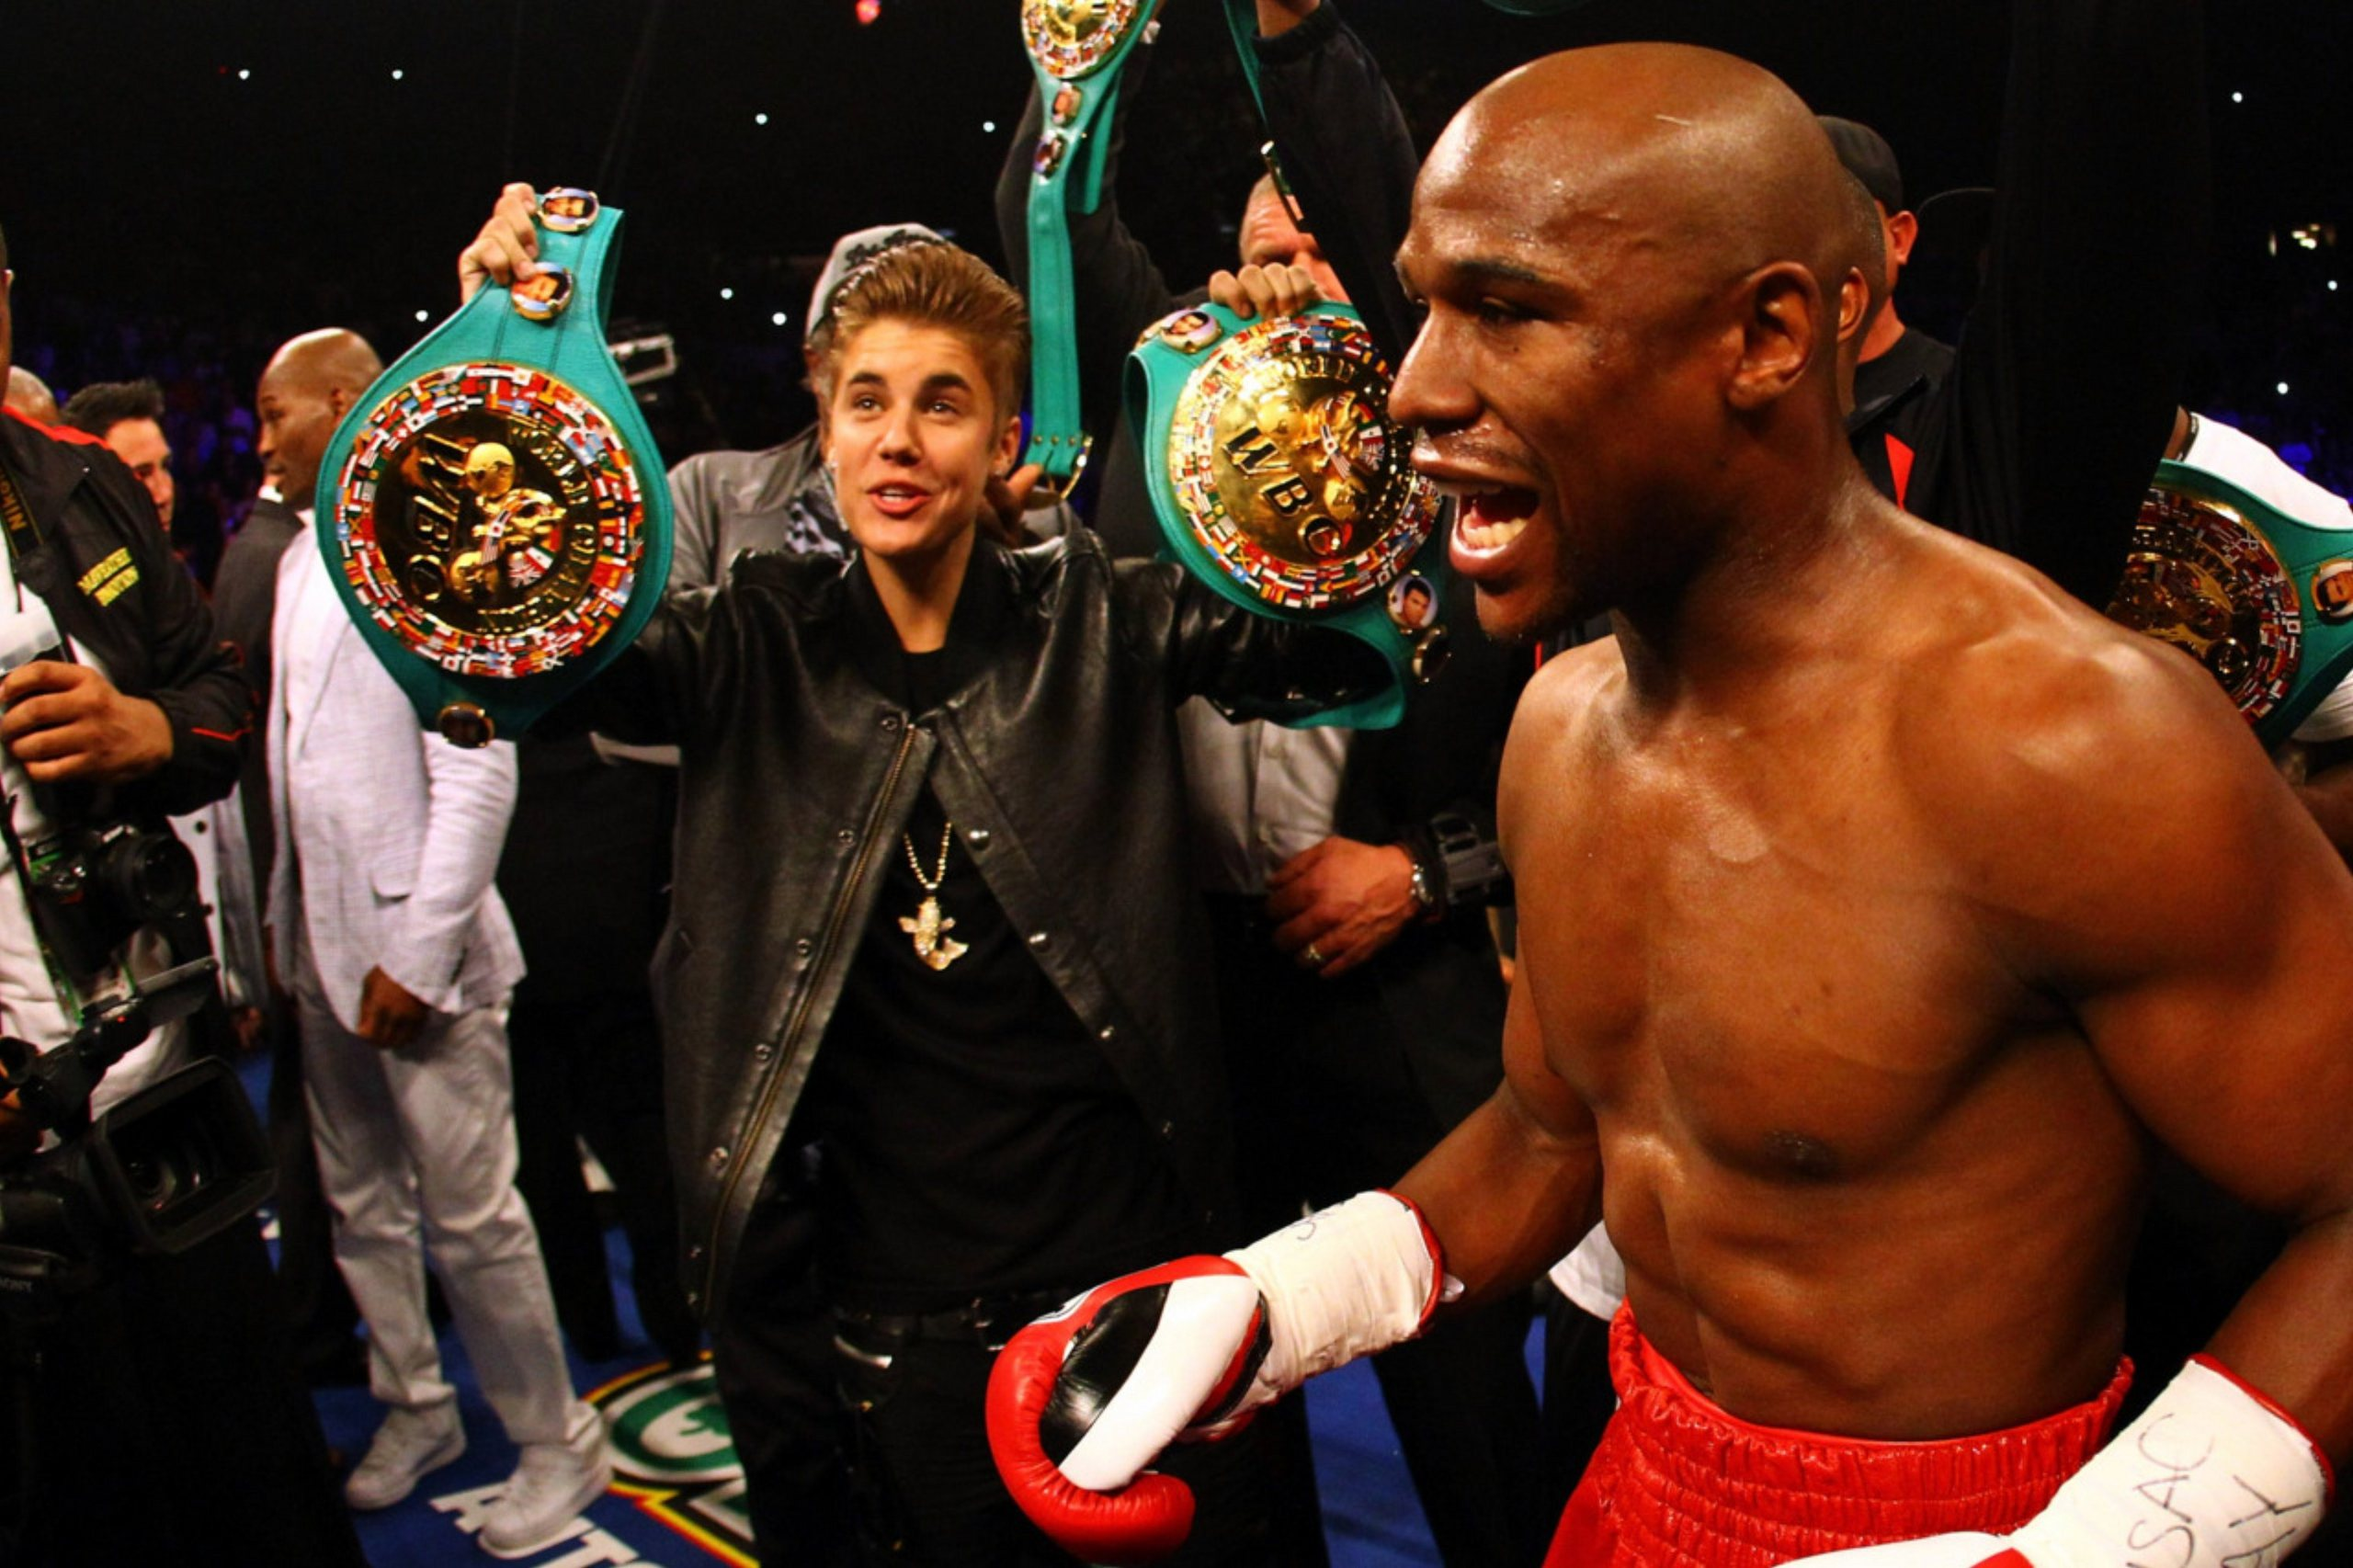 Justin Bieber and 50 Cent at Mayweather vs Cotto Fight - Justin ...